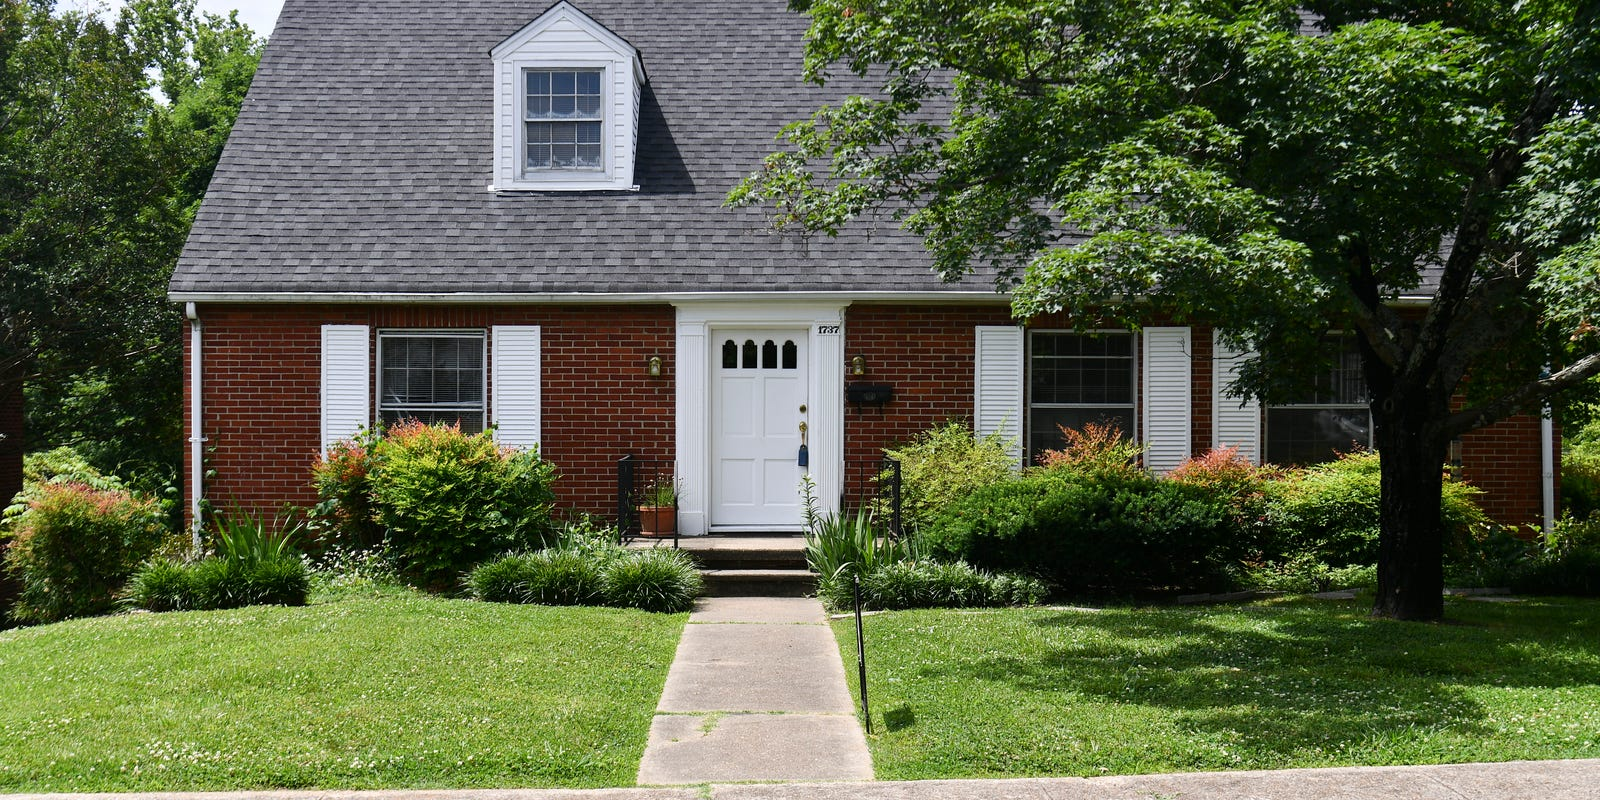 Real Estate Knoxville